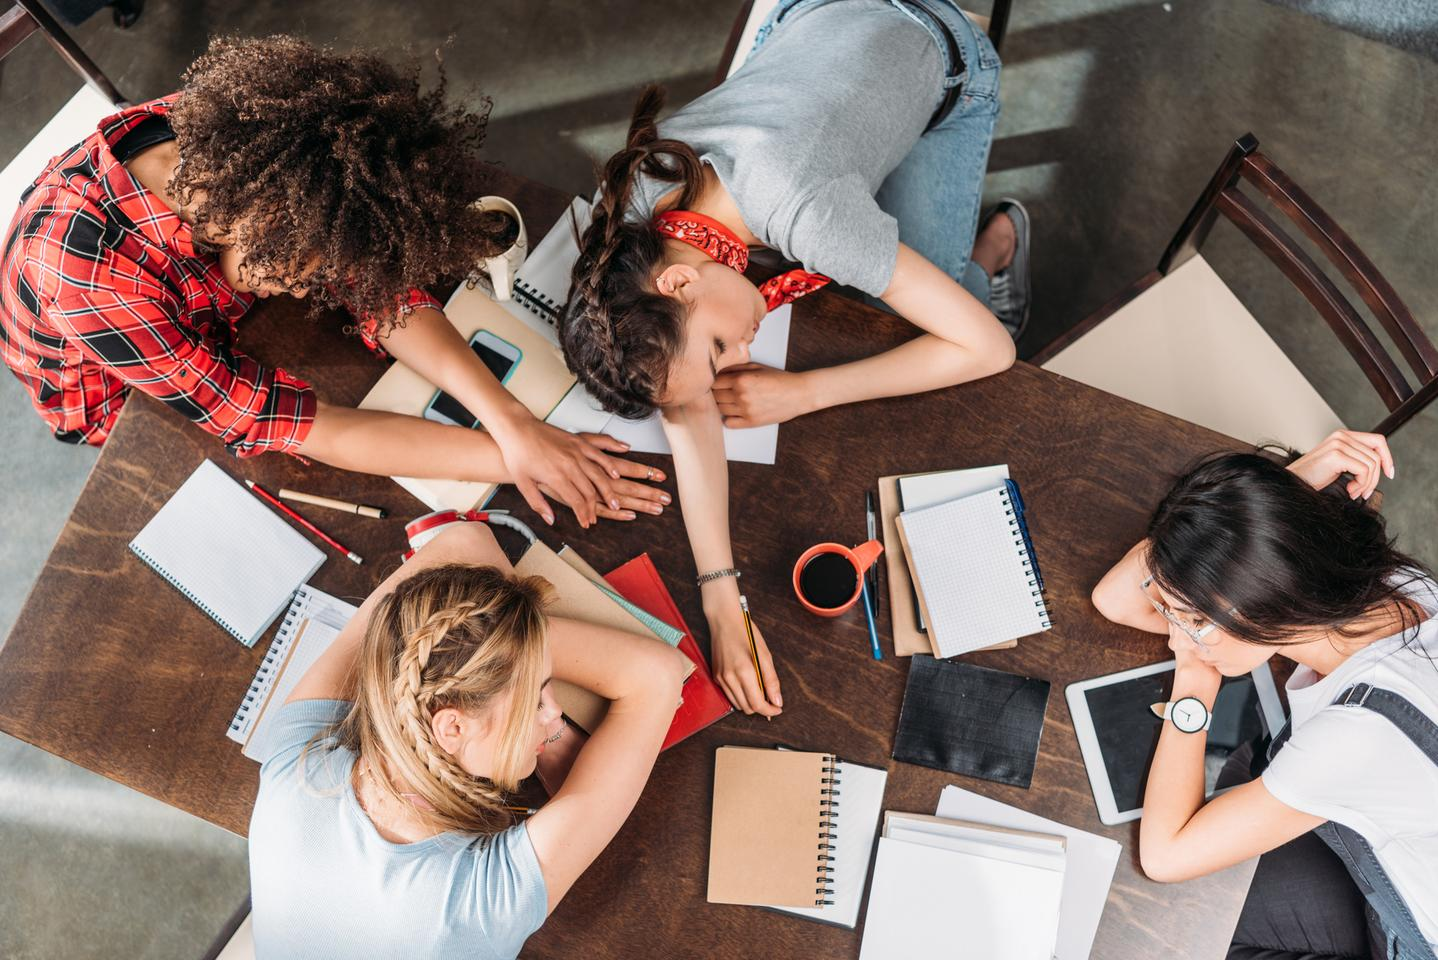 The University of Minnesota study found pushing school start time later to around 8.30am increased student sleep times by over 40 minutes each night